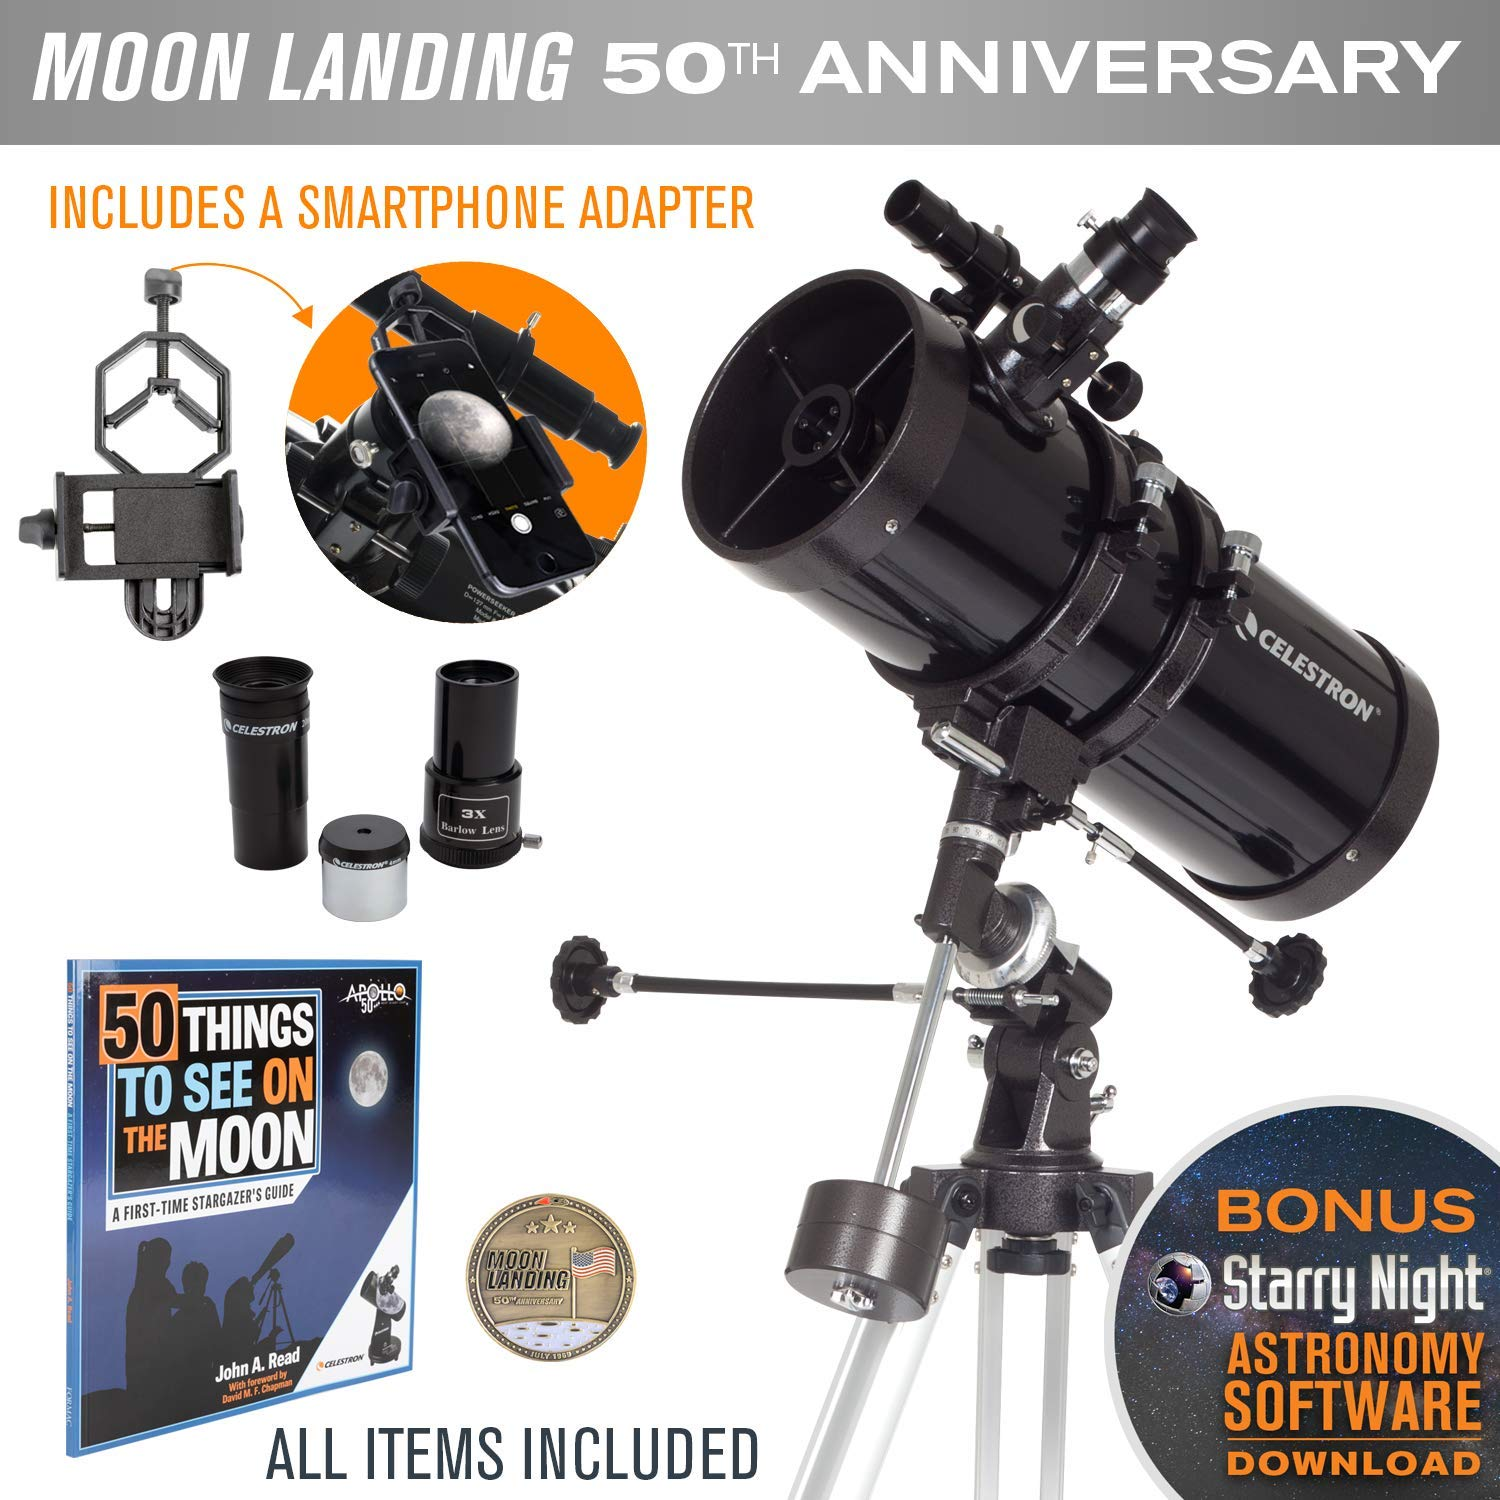 Celestron PowerSeeker 127EQ Newtonian Reflector Telescope with Smartphone Adapter - Limited Edition Apollo 11 50th Anniversary Bundle with Commemorative Coin and Book (Renewed) by Celestron